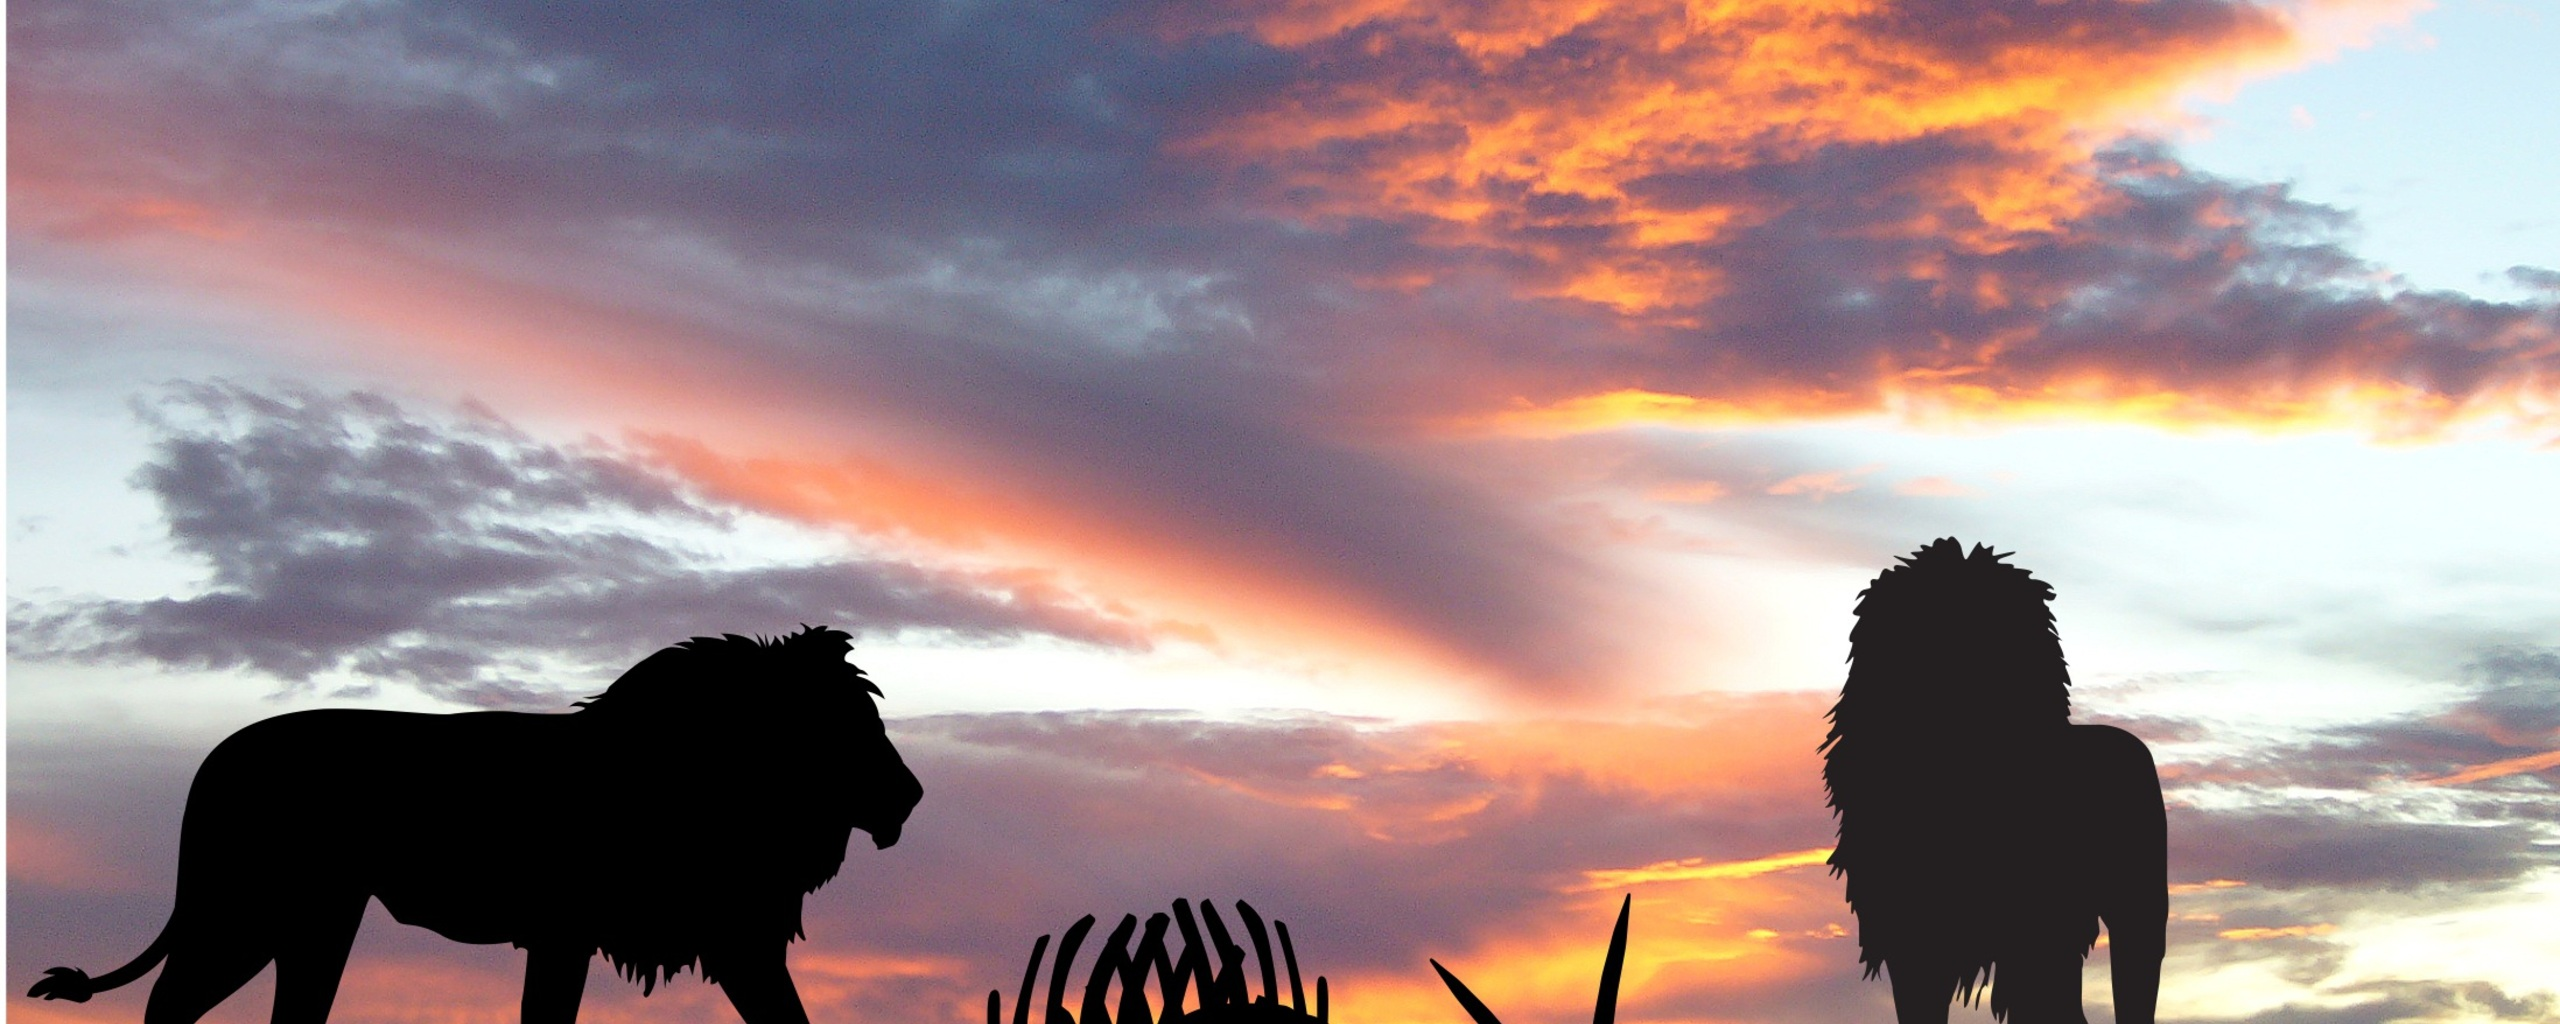 lions-africa-silhouette-sunset-od.jpg